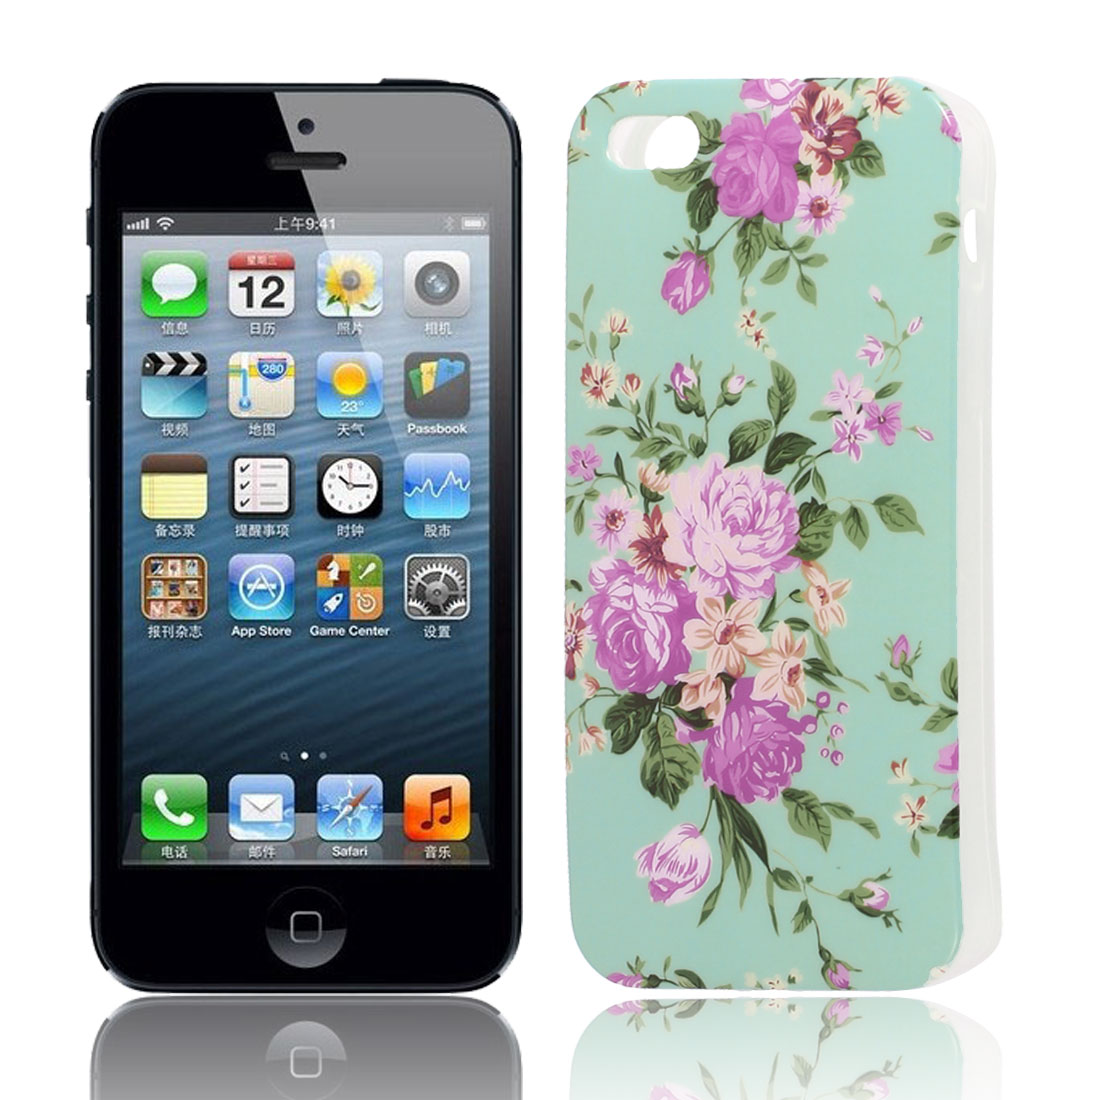 Fuchsia Flower Pattern Soft TPU Protective Skin Case Cover Cyan for Apple iPhone 5 5G 5S